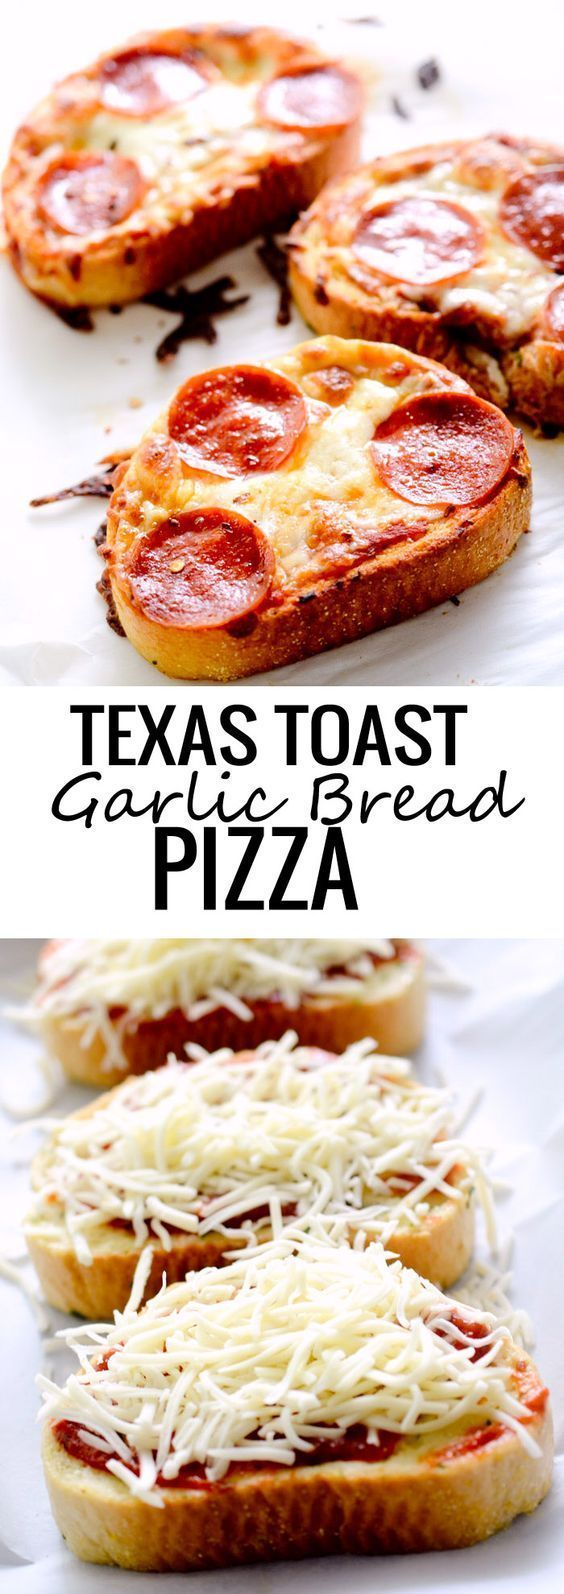 how to cook texas toast